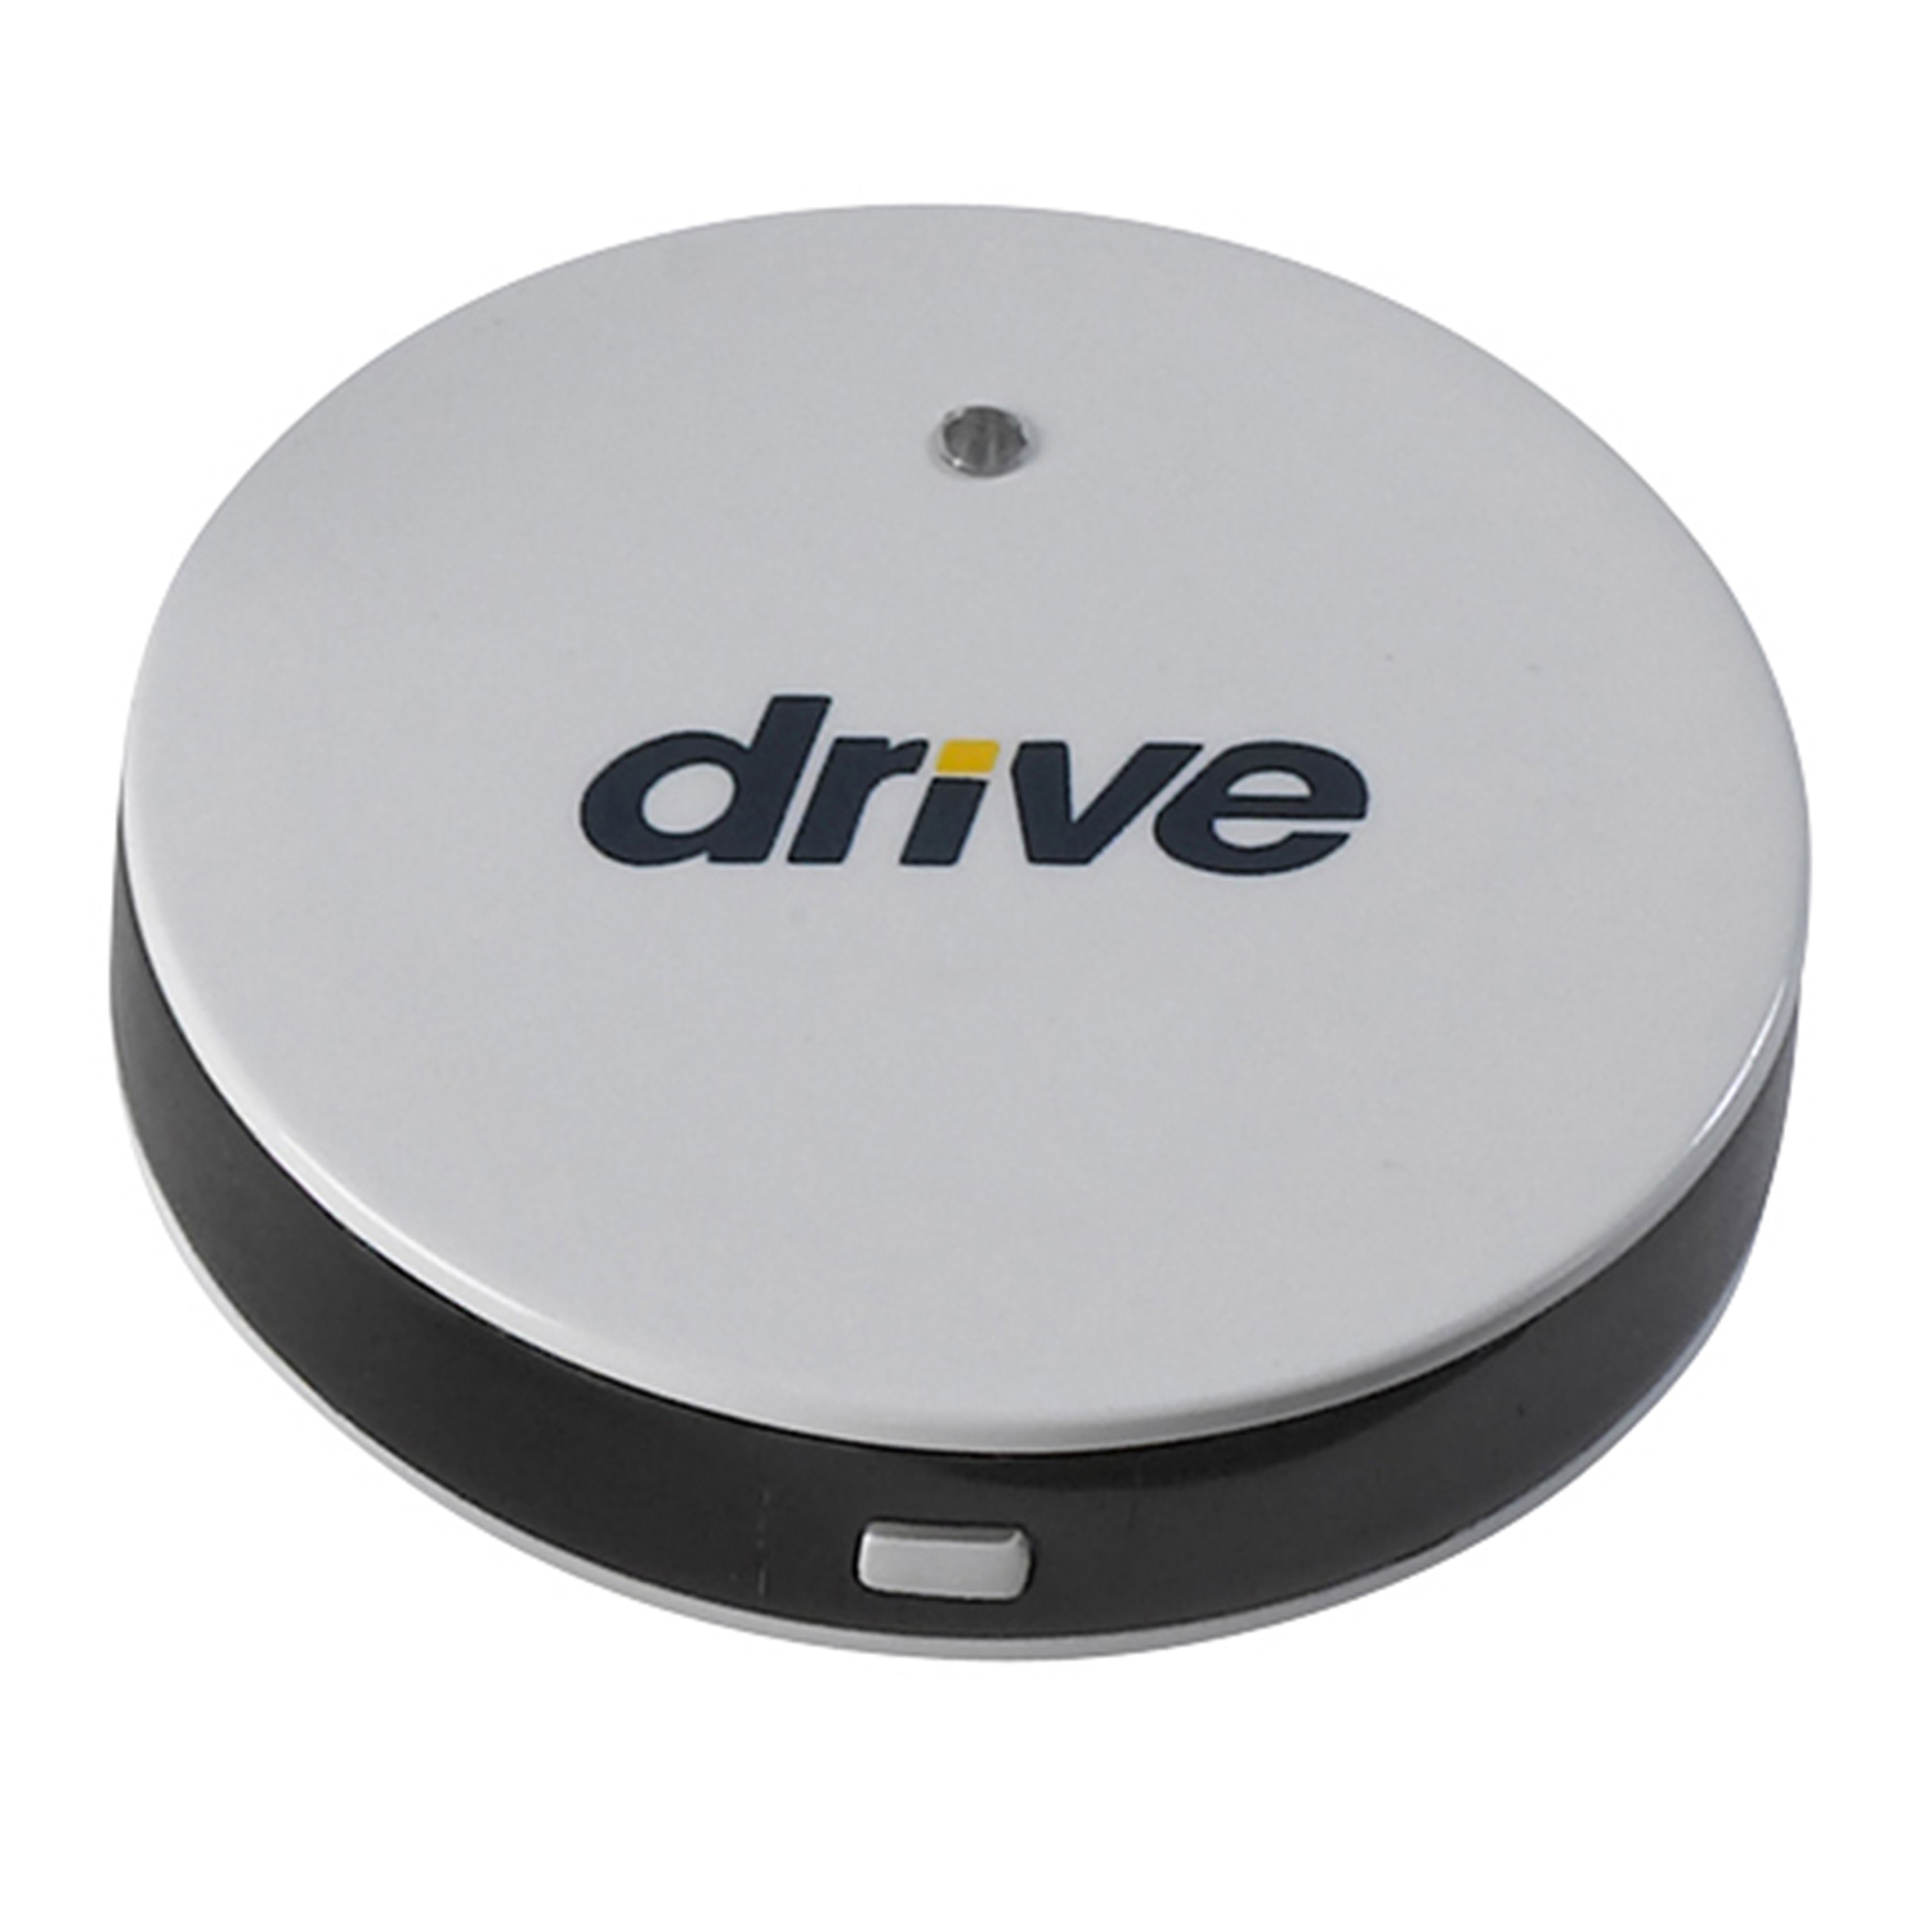 Drive DeVilbiss Healthcare PainAway Wireless Receiver for TENS Unit